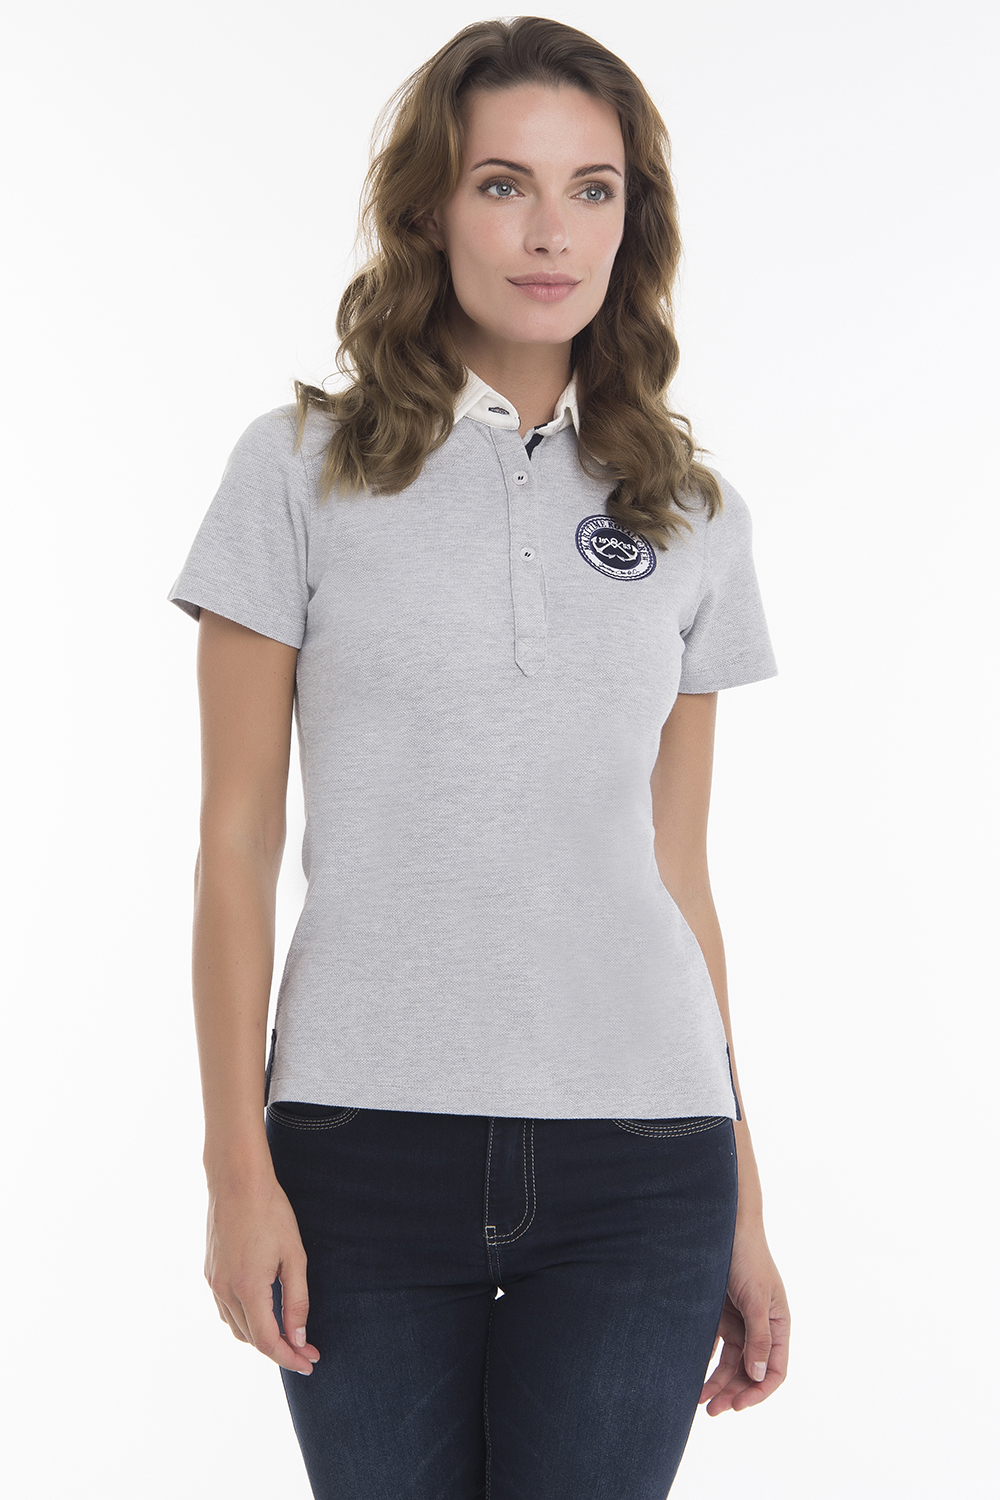 Women's Poloshirt Knitted Heather Gray Cotton